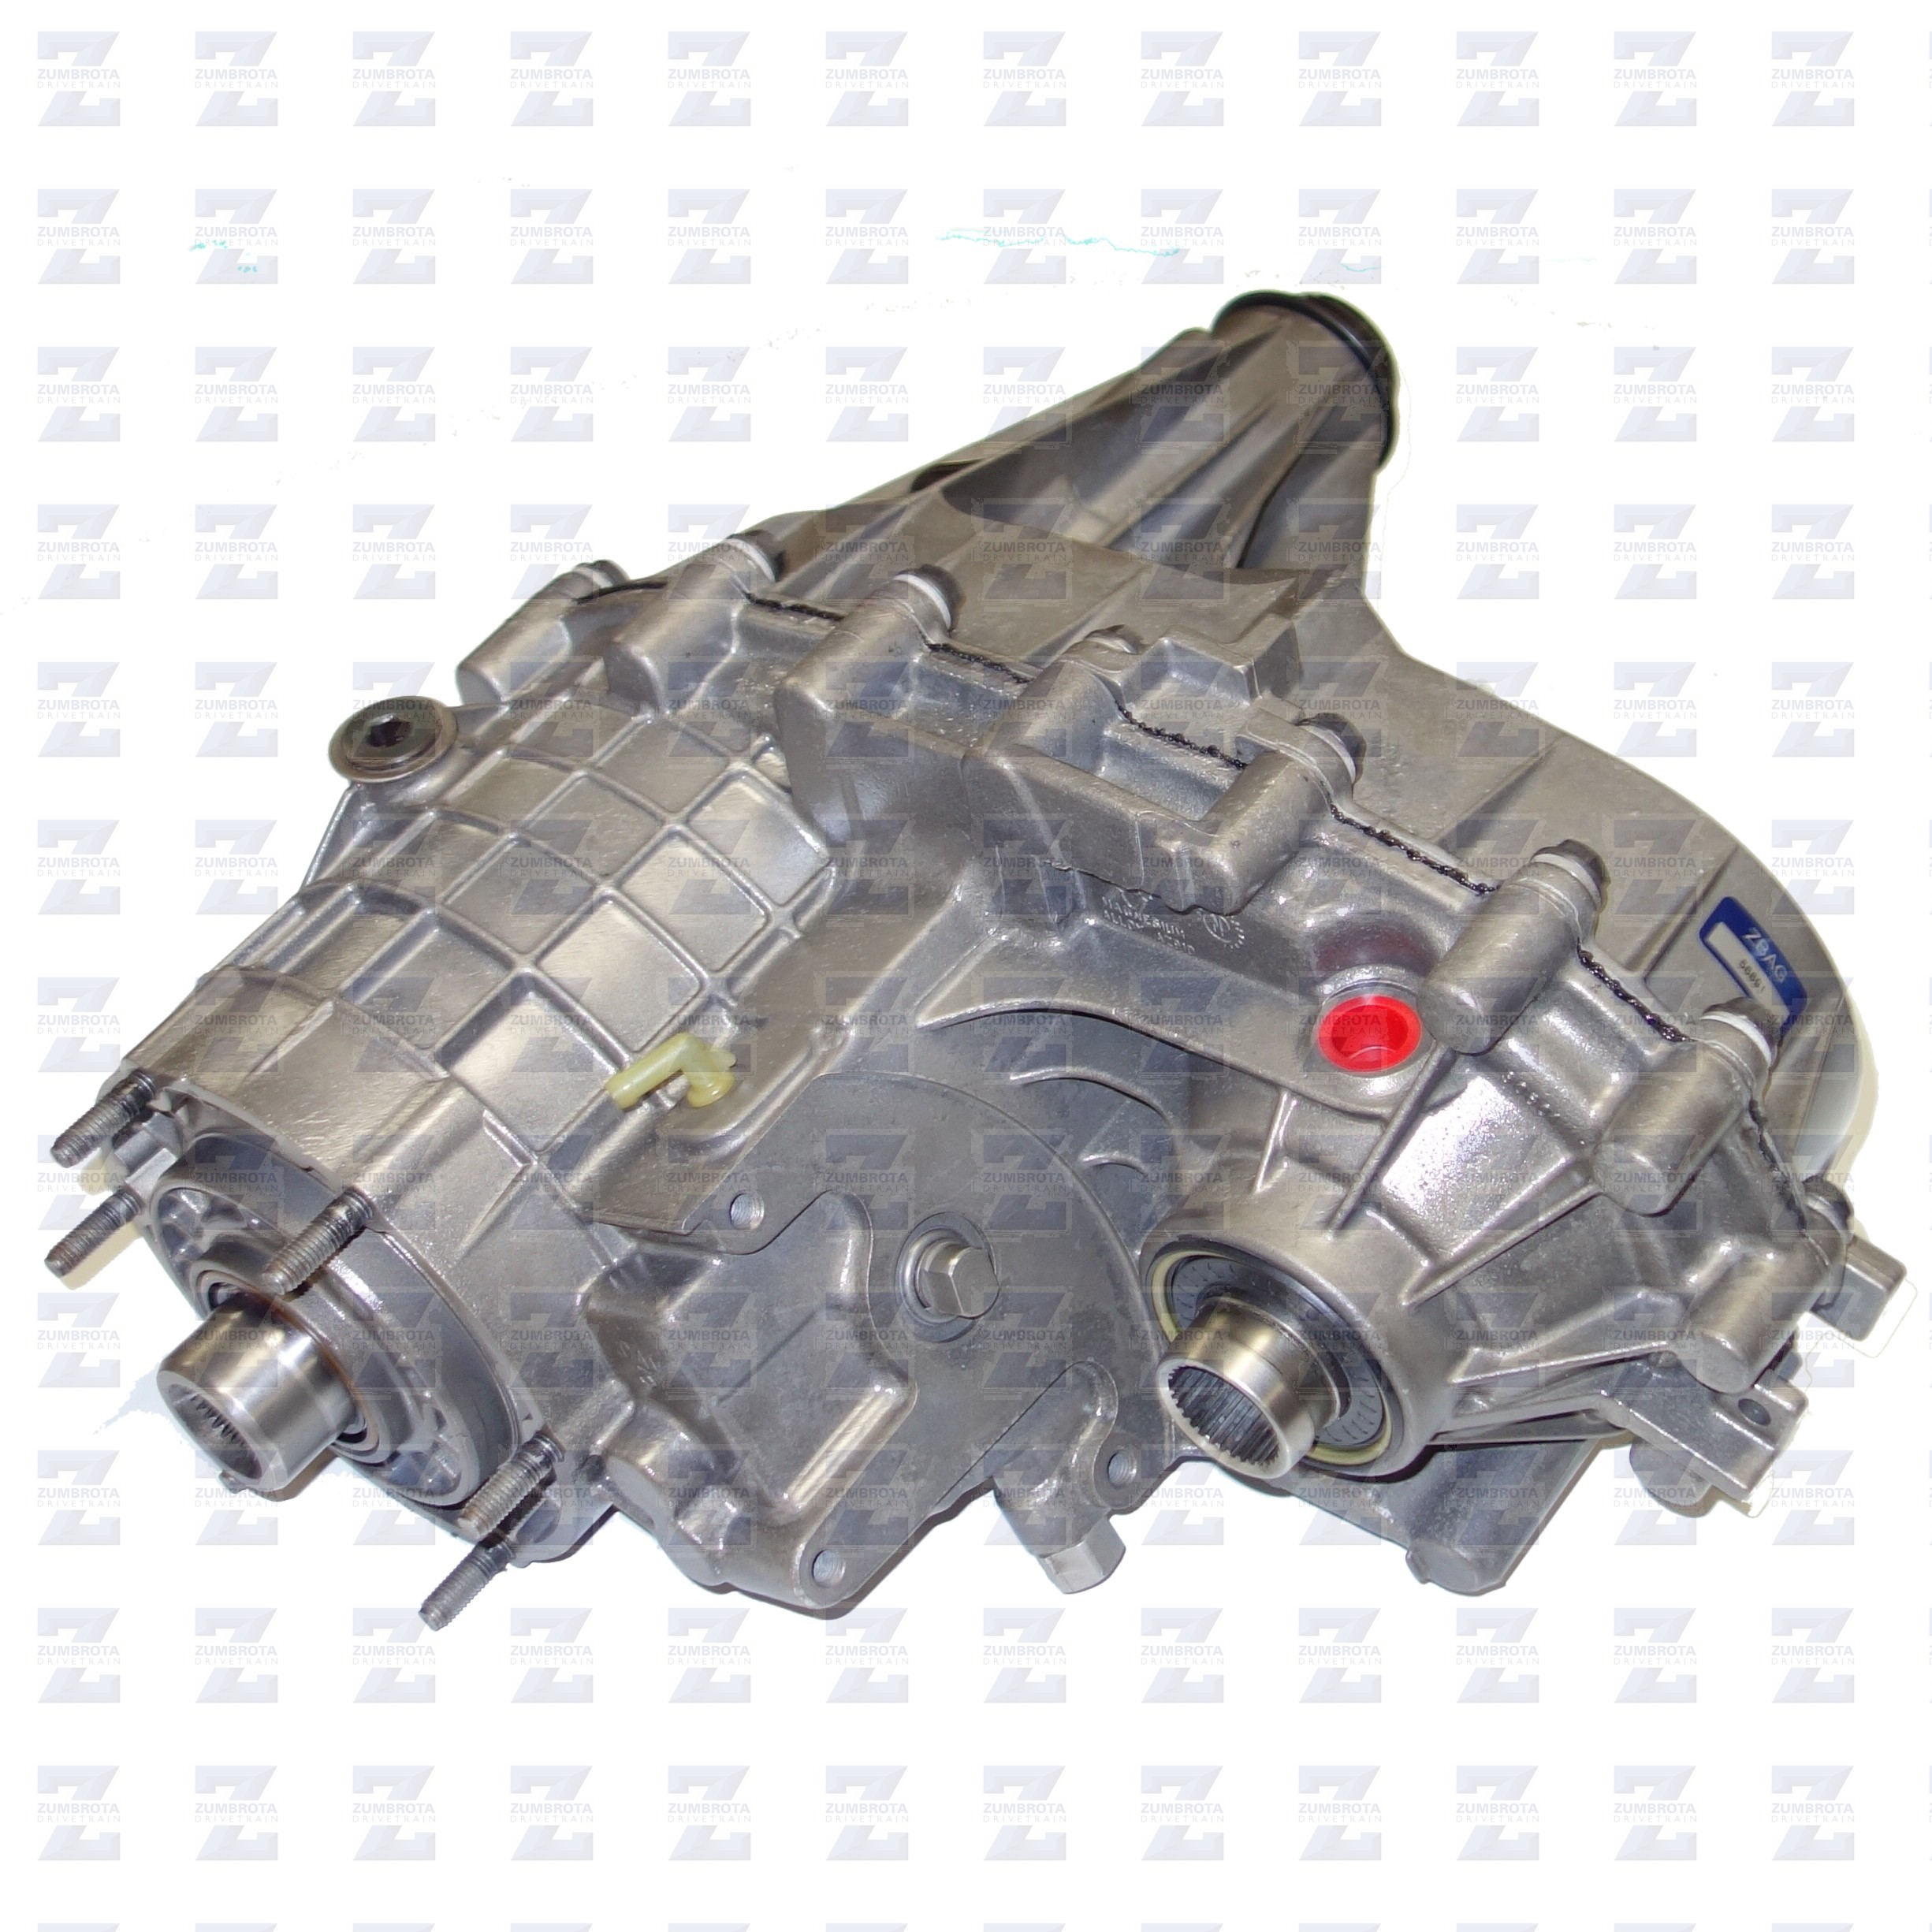 np246 transfer case service manual